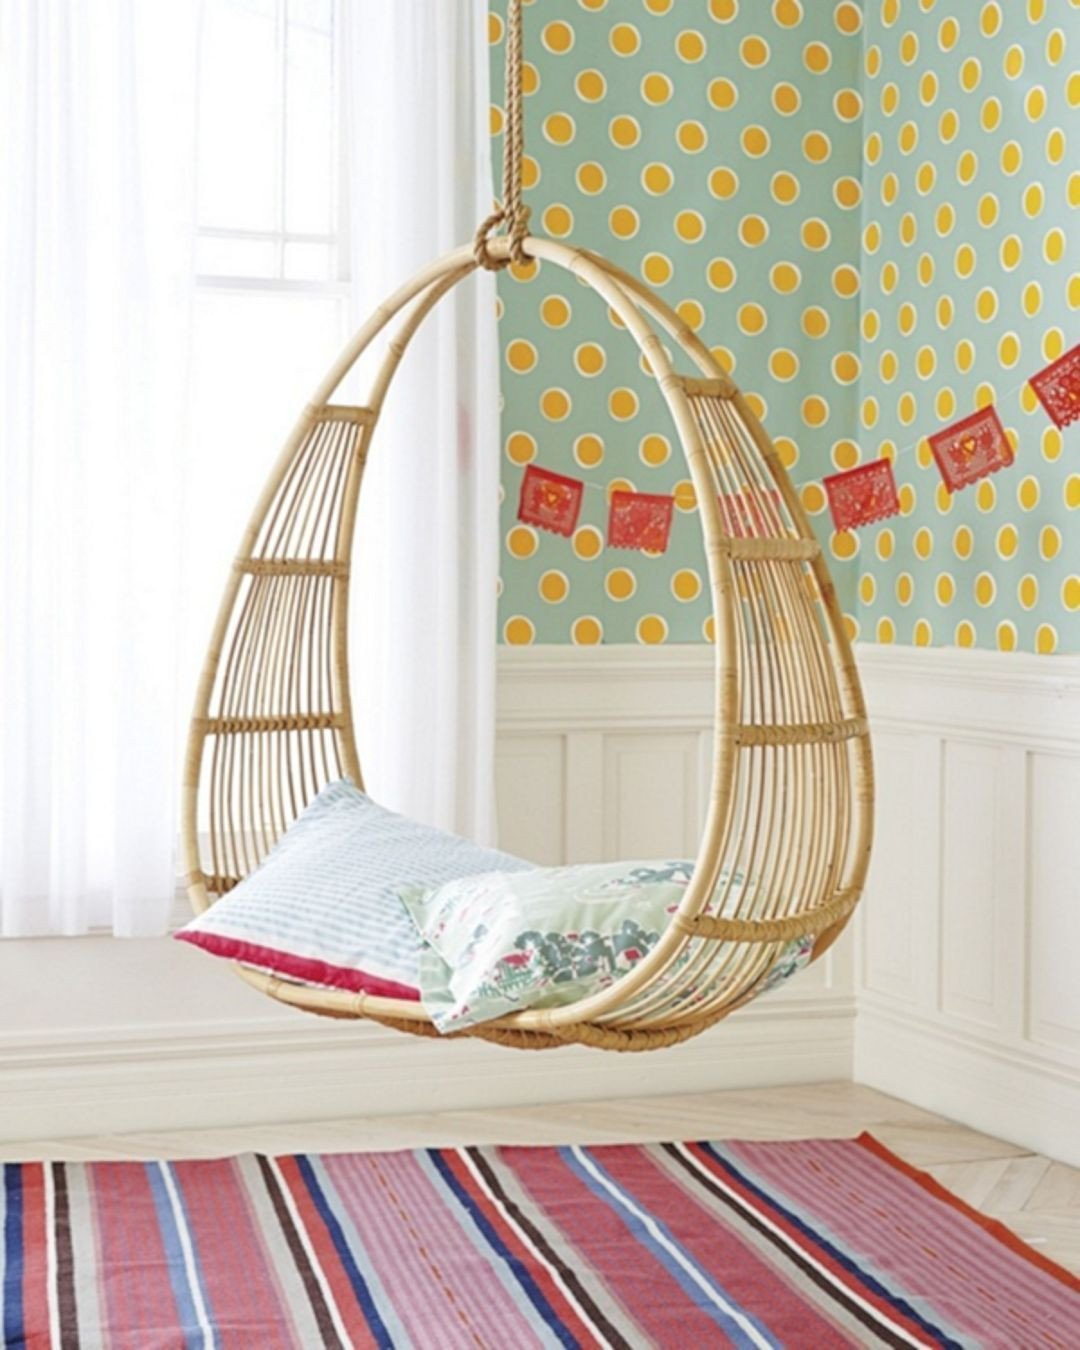 Hanging Chairs for Bedroom Fresh Super Cozy Hanging Rattan Chairs 85 Best Ideas for Your